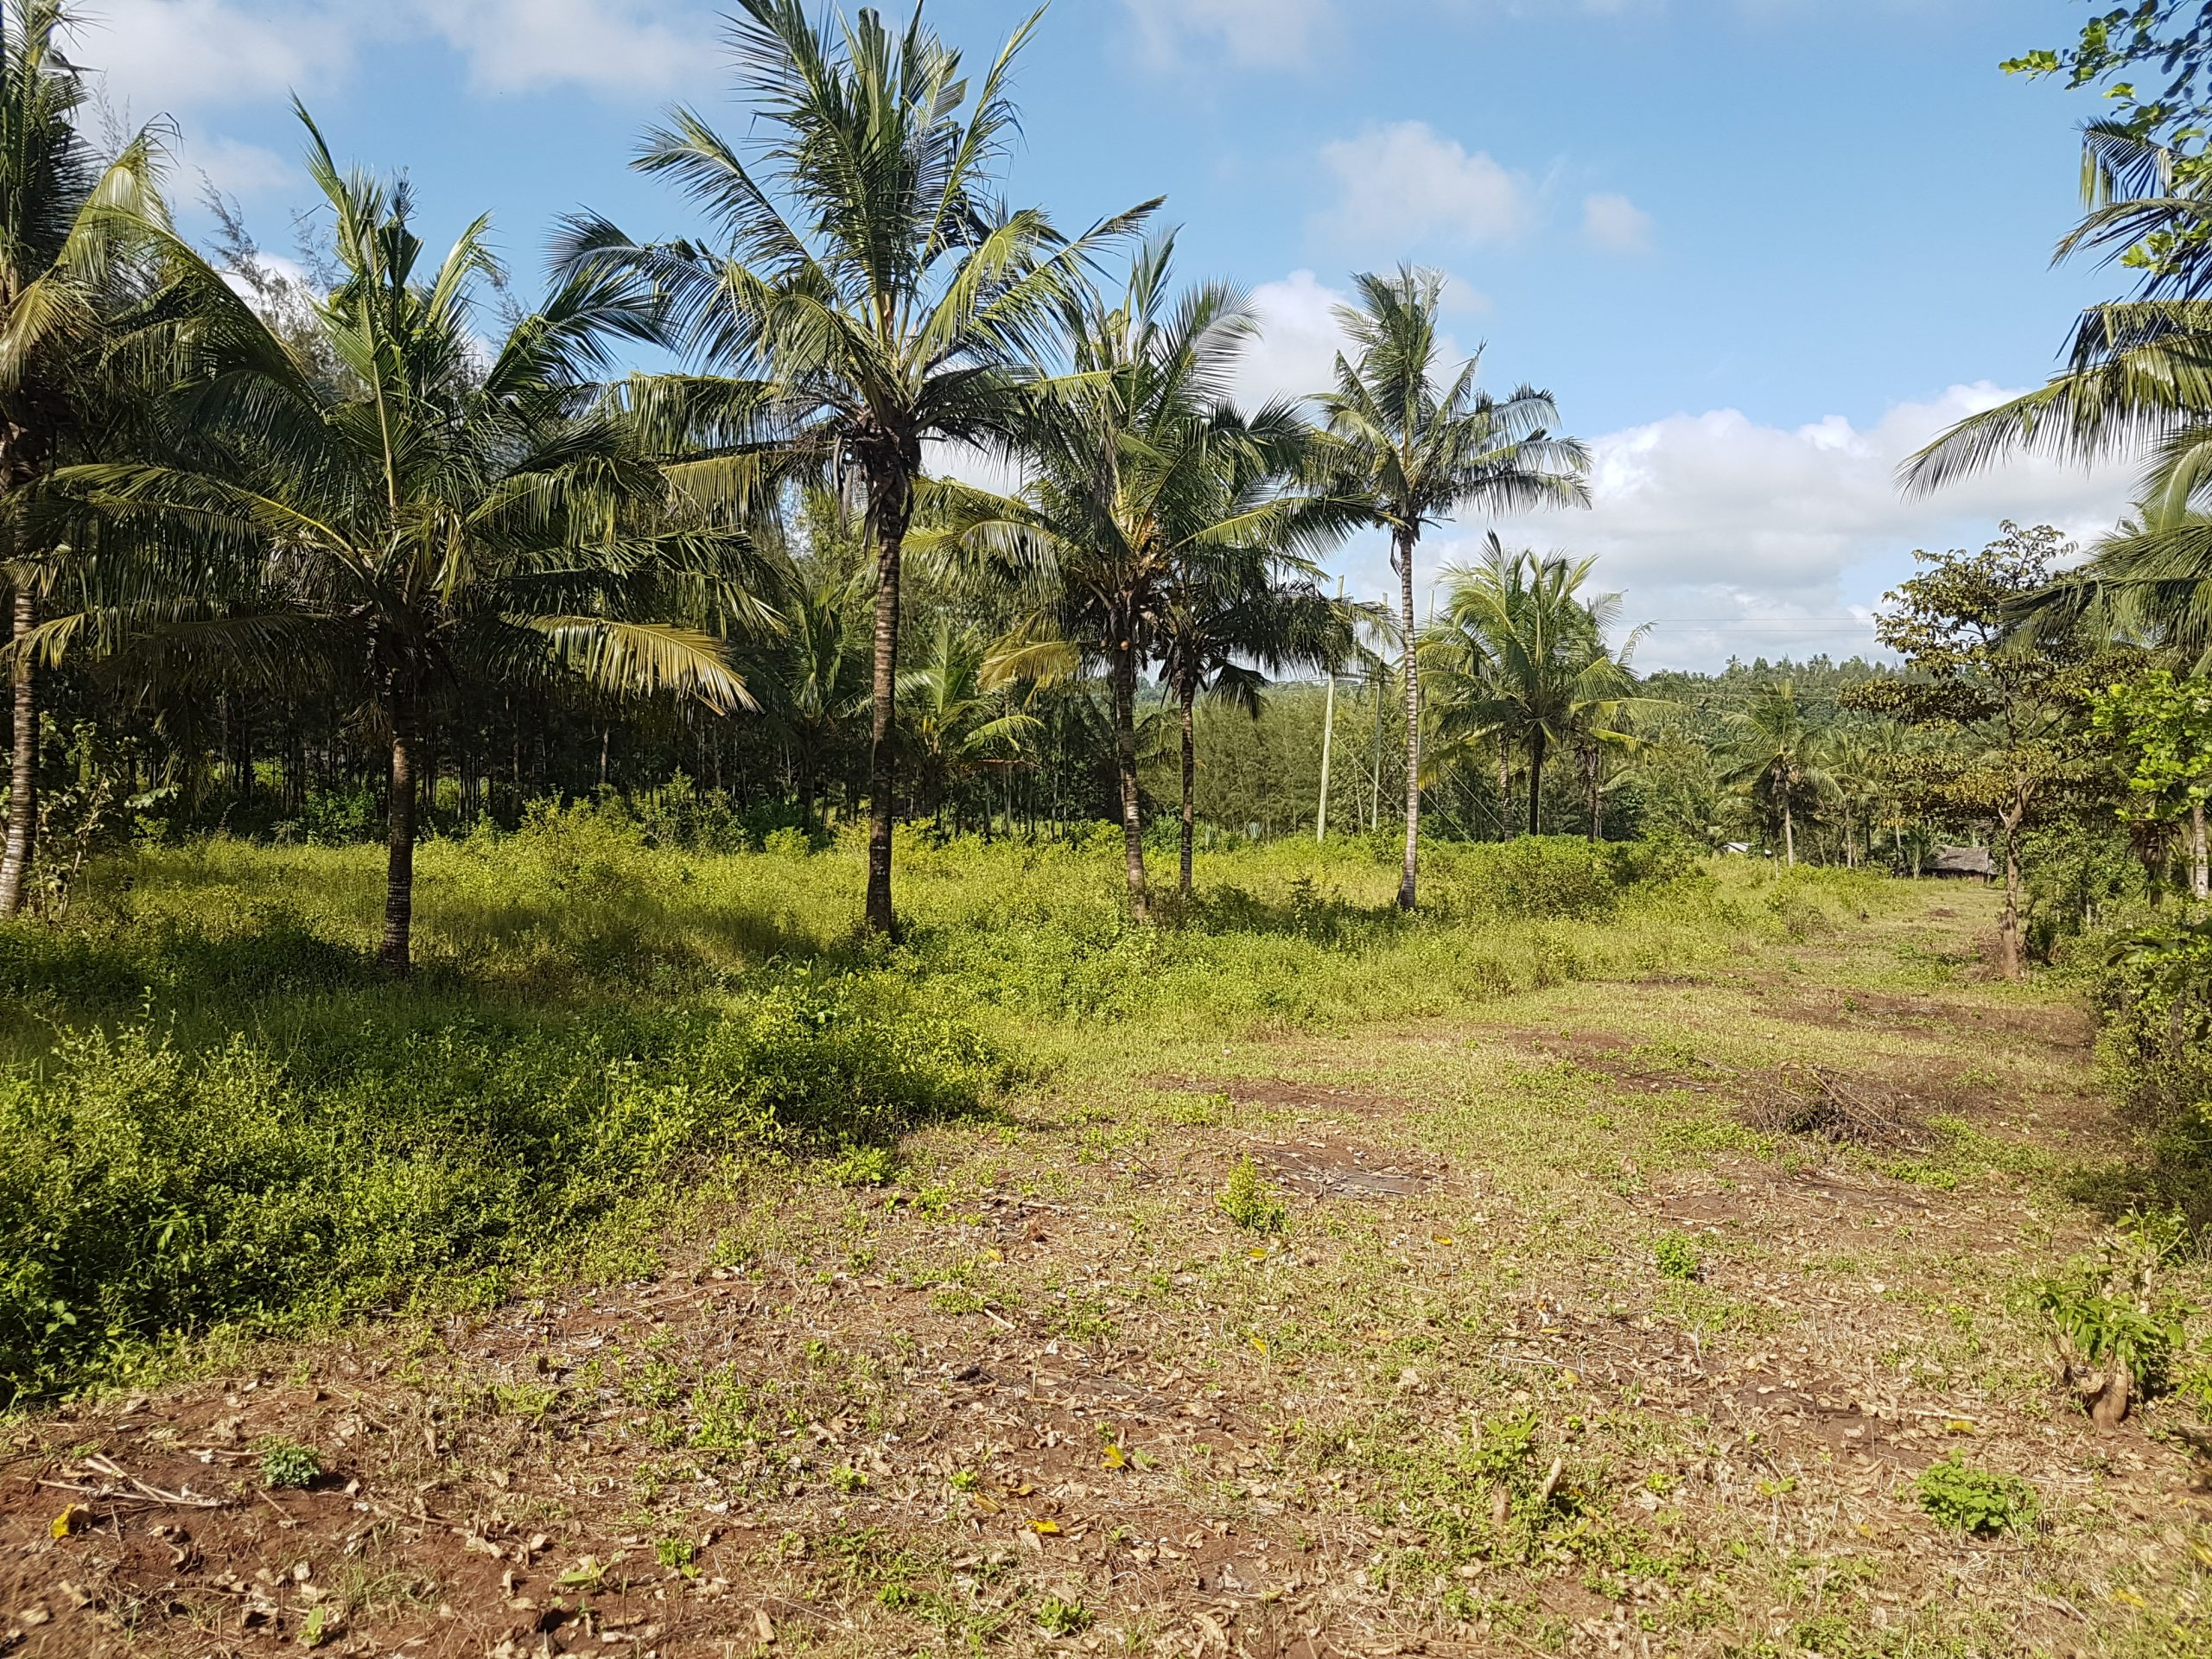 1/4 acre plots for sale in Vipingo